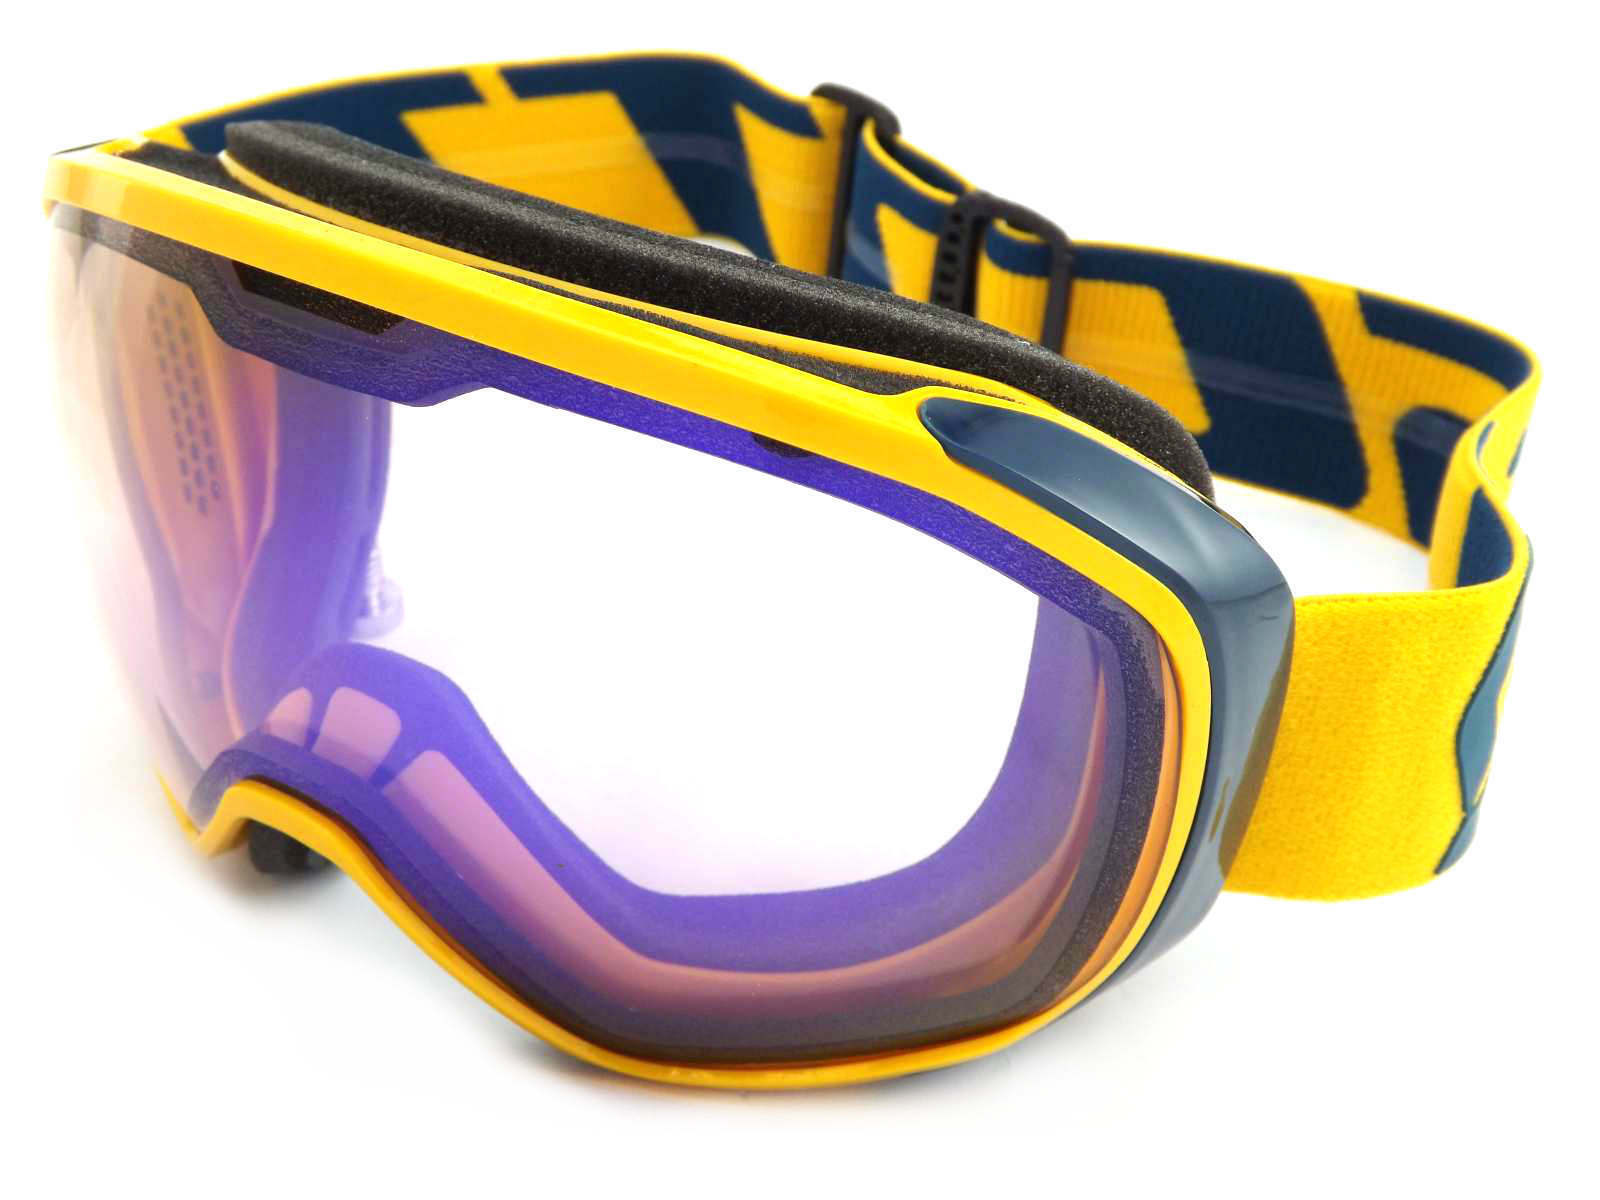 SCOTT - FIX ski snow Goggles CITRUS YELLOW  CORAL blueE  Illuminator Lens 244589